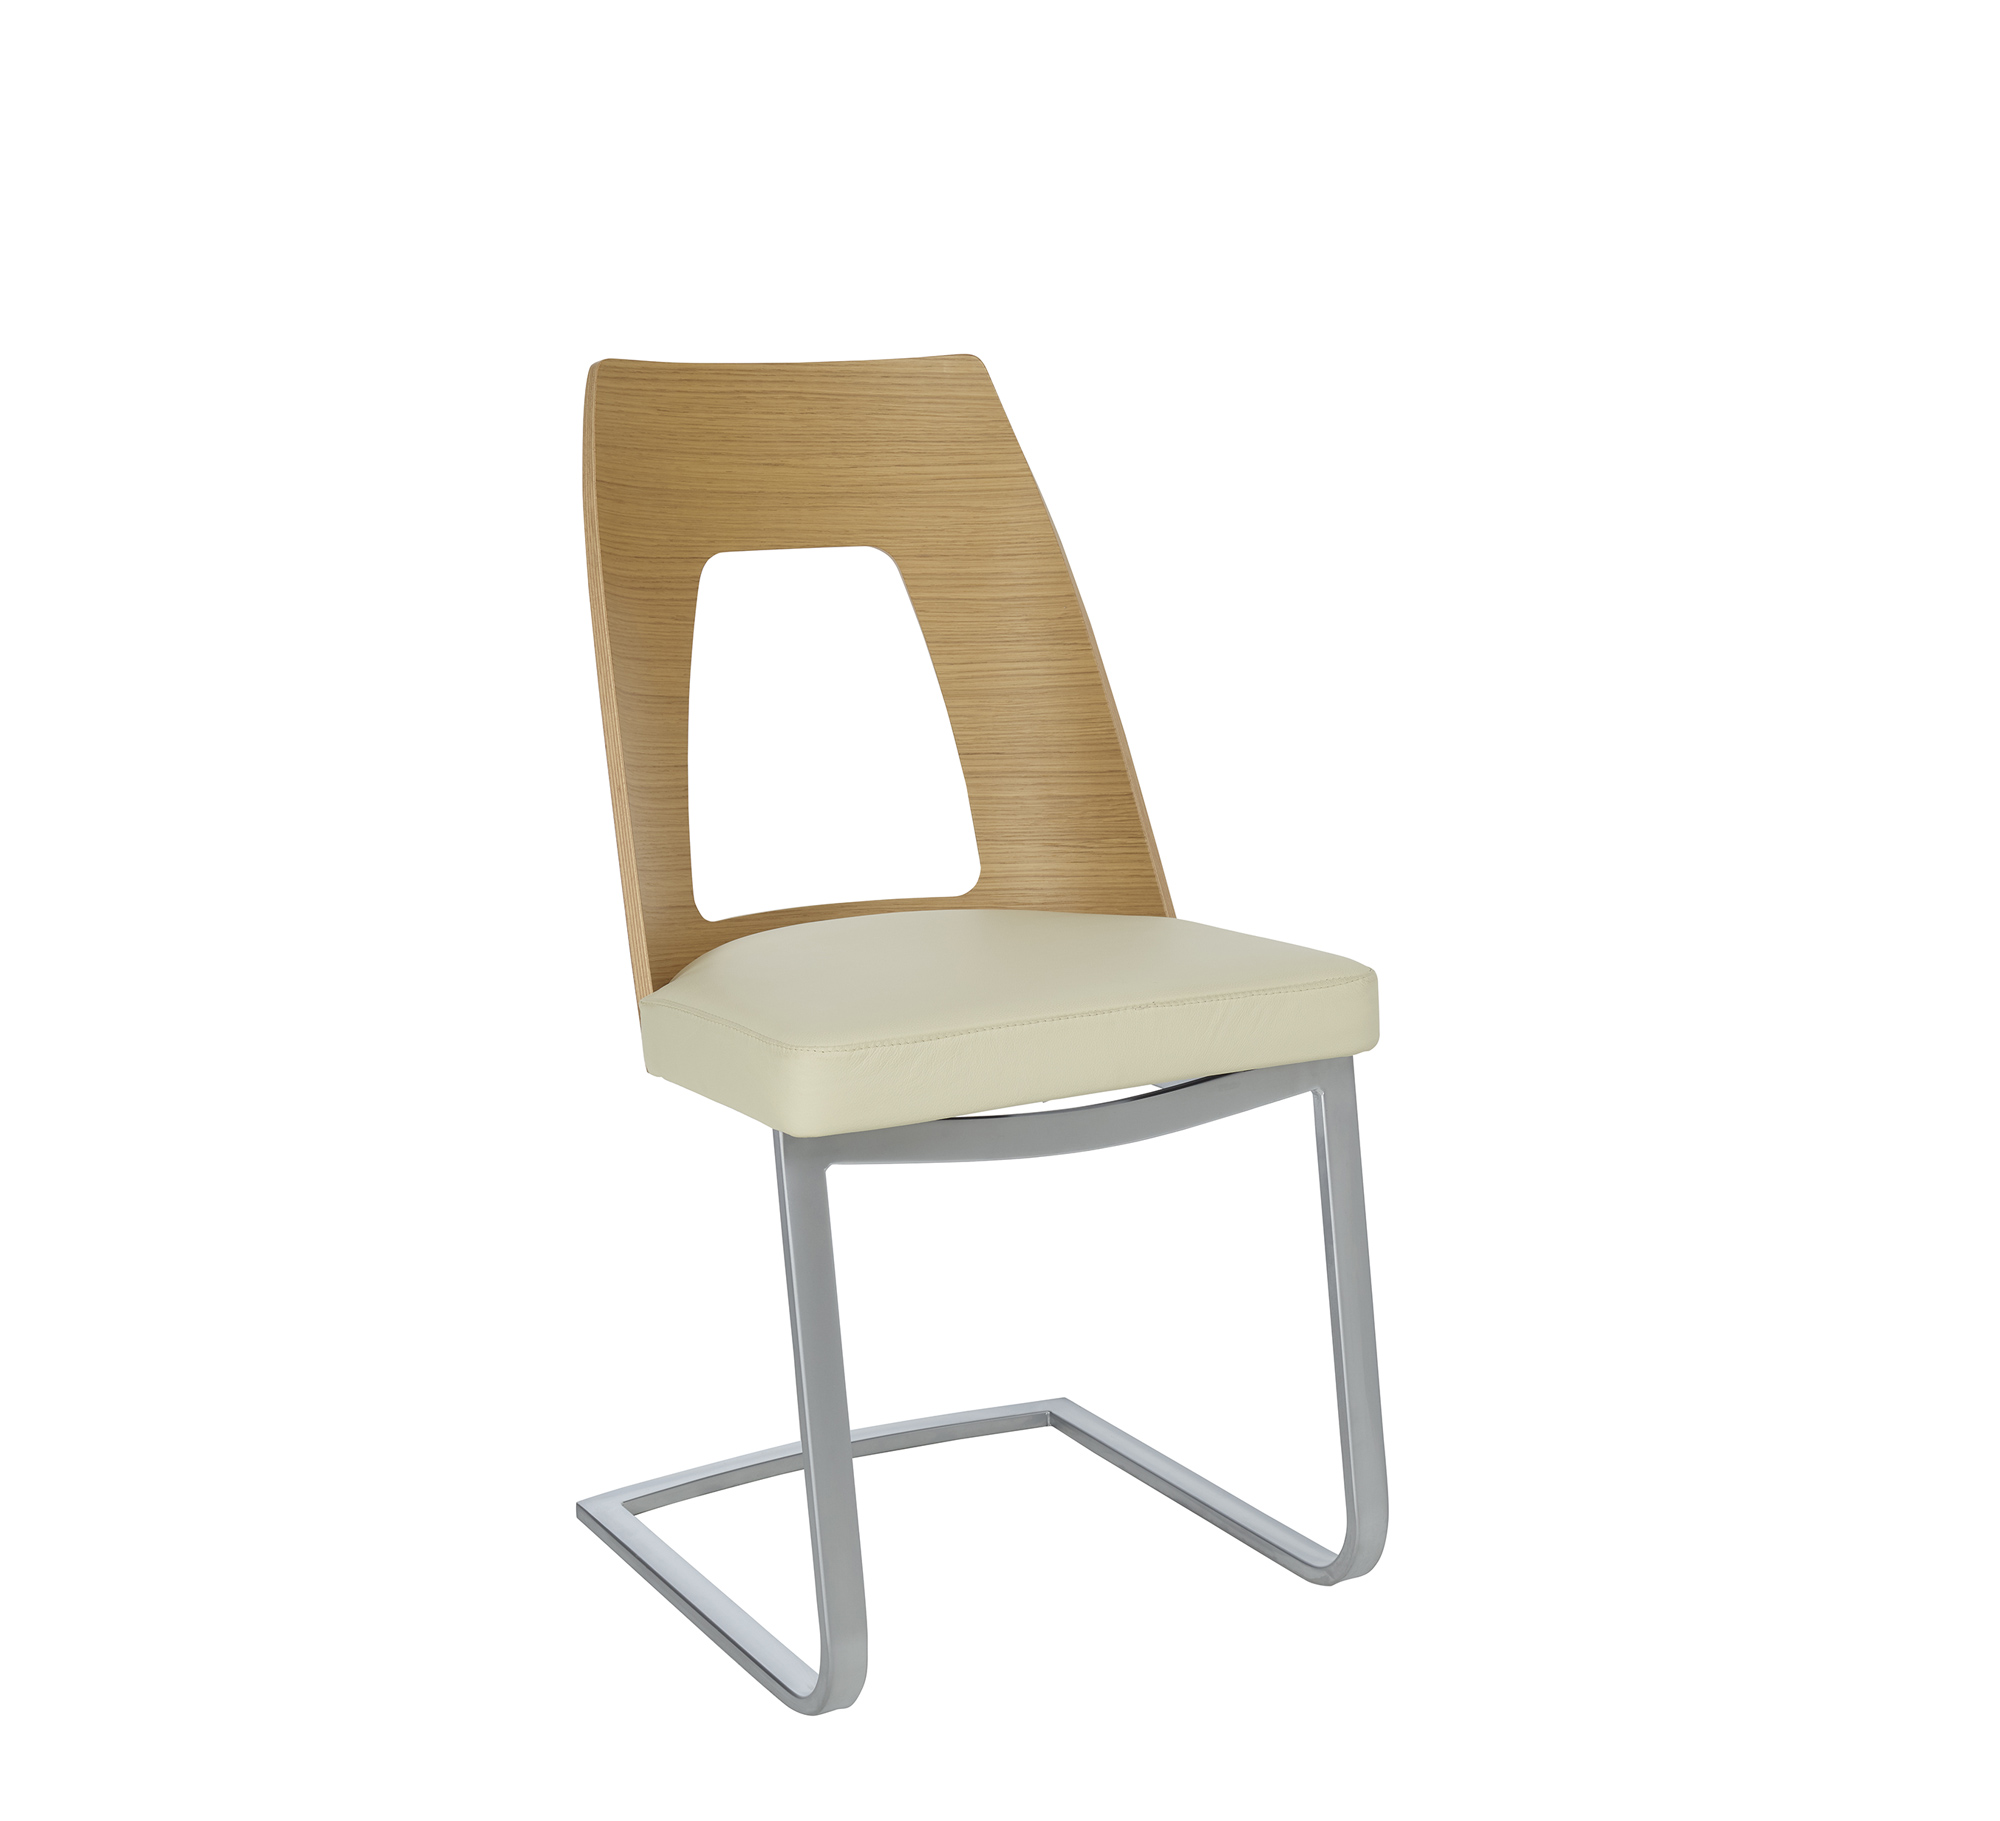 Romana Cantilevered Dining Chair   Dining Chairs   Ercol ...